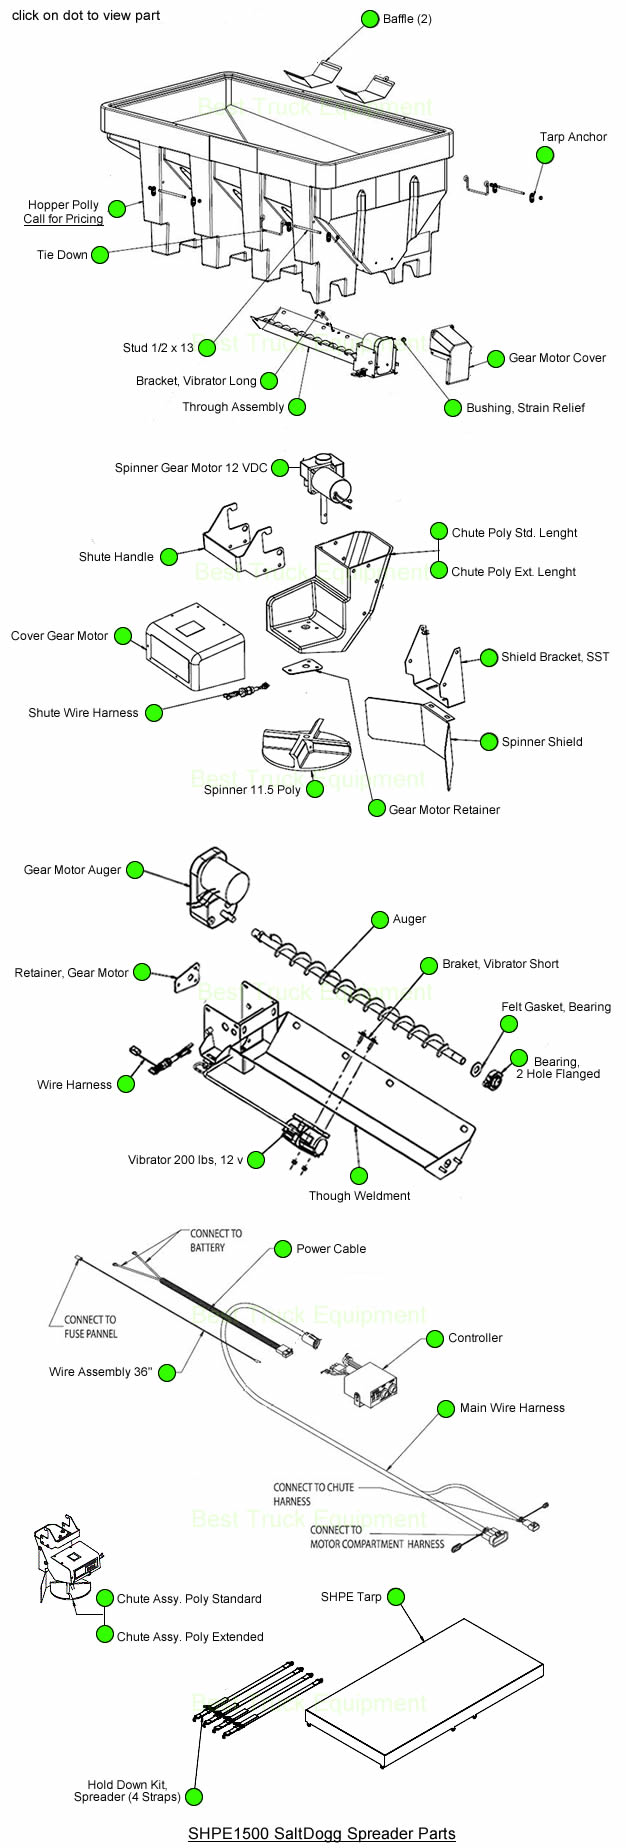 shpe2000 saltdogg shpe2000 buyers salt spreader parts by part look up diagram saltdogg salt spreader wire harness at mifinder.co